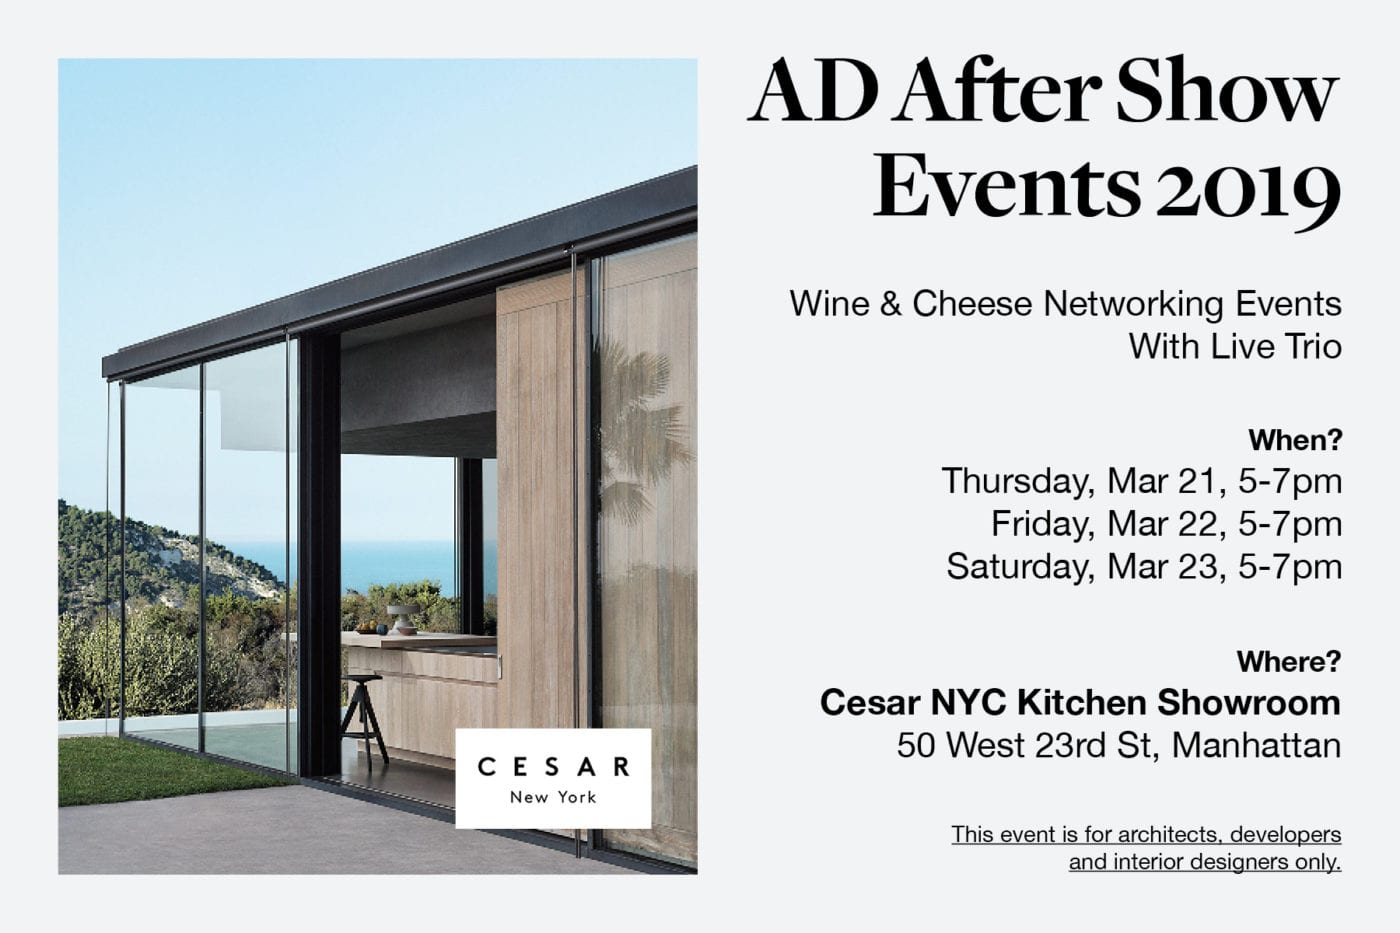 AD After Show Events 2019